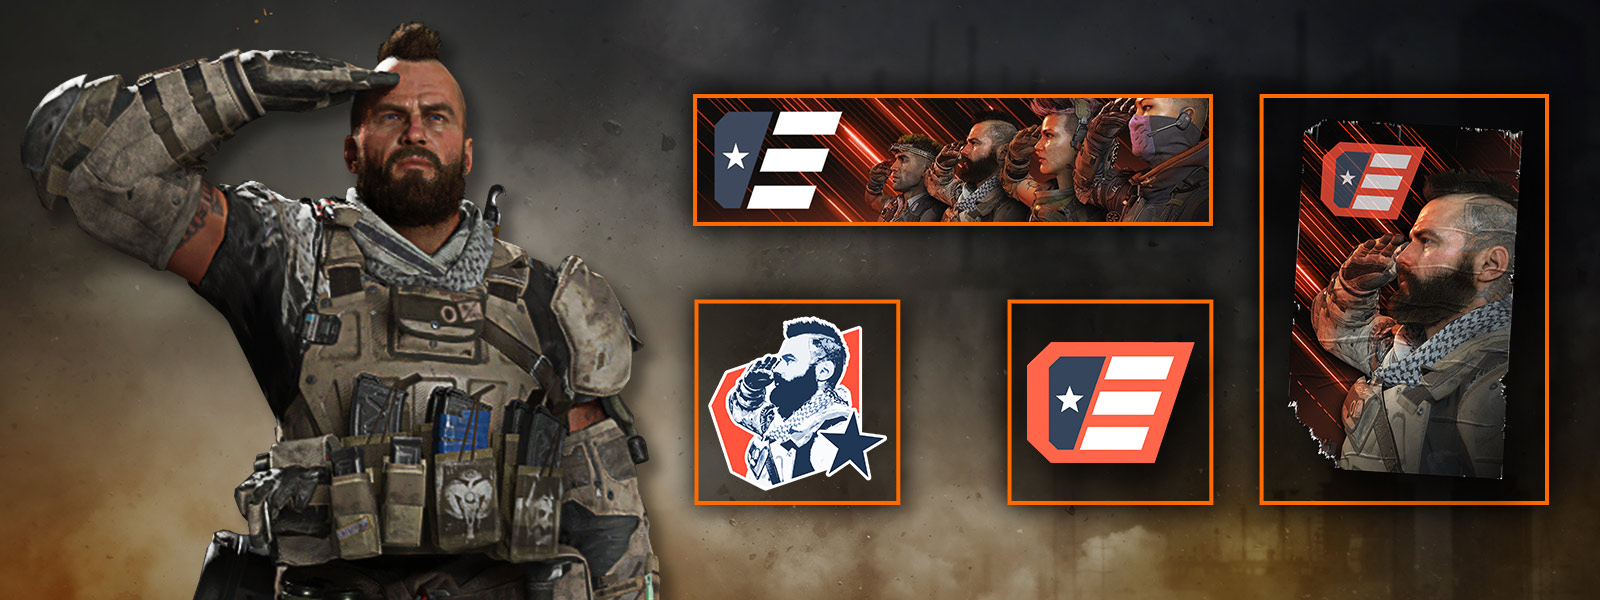 A male character does a salute next to a tag, sticker, calling card, and emblem